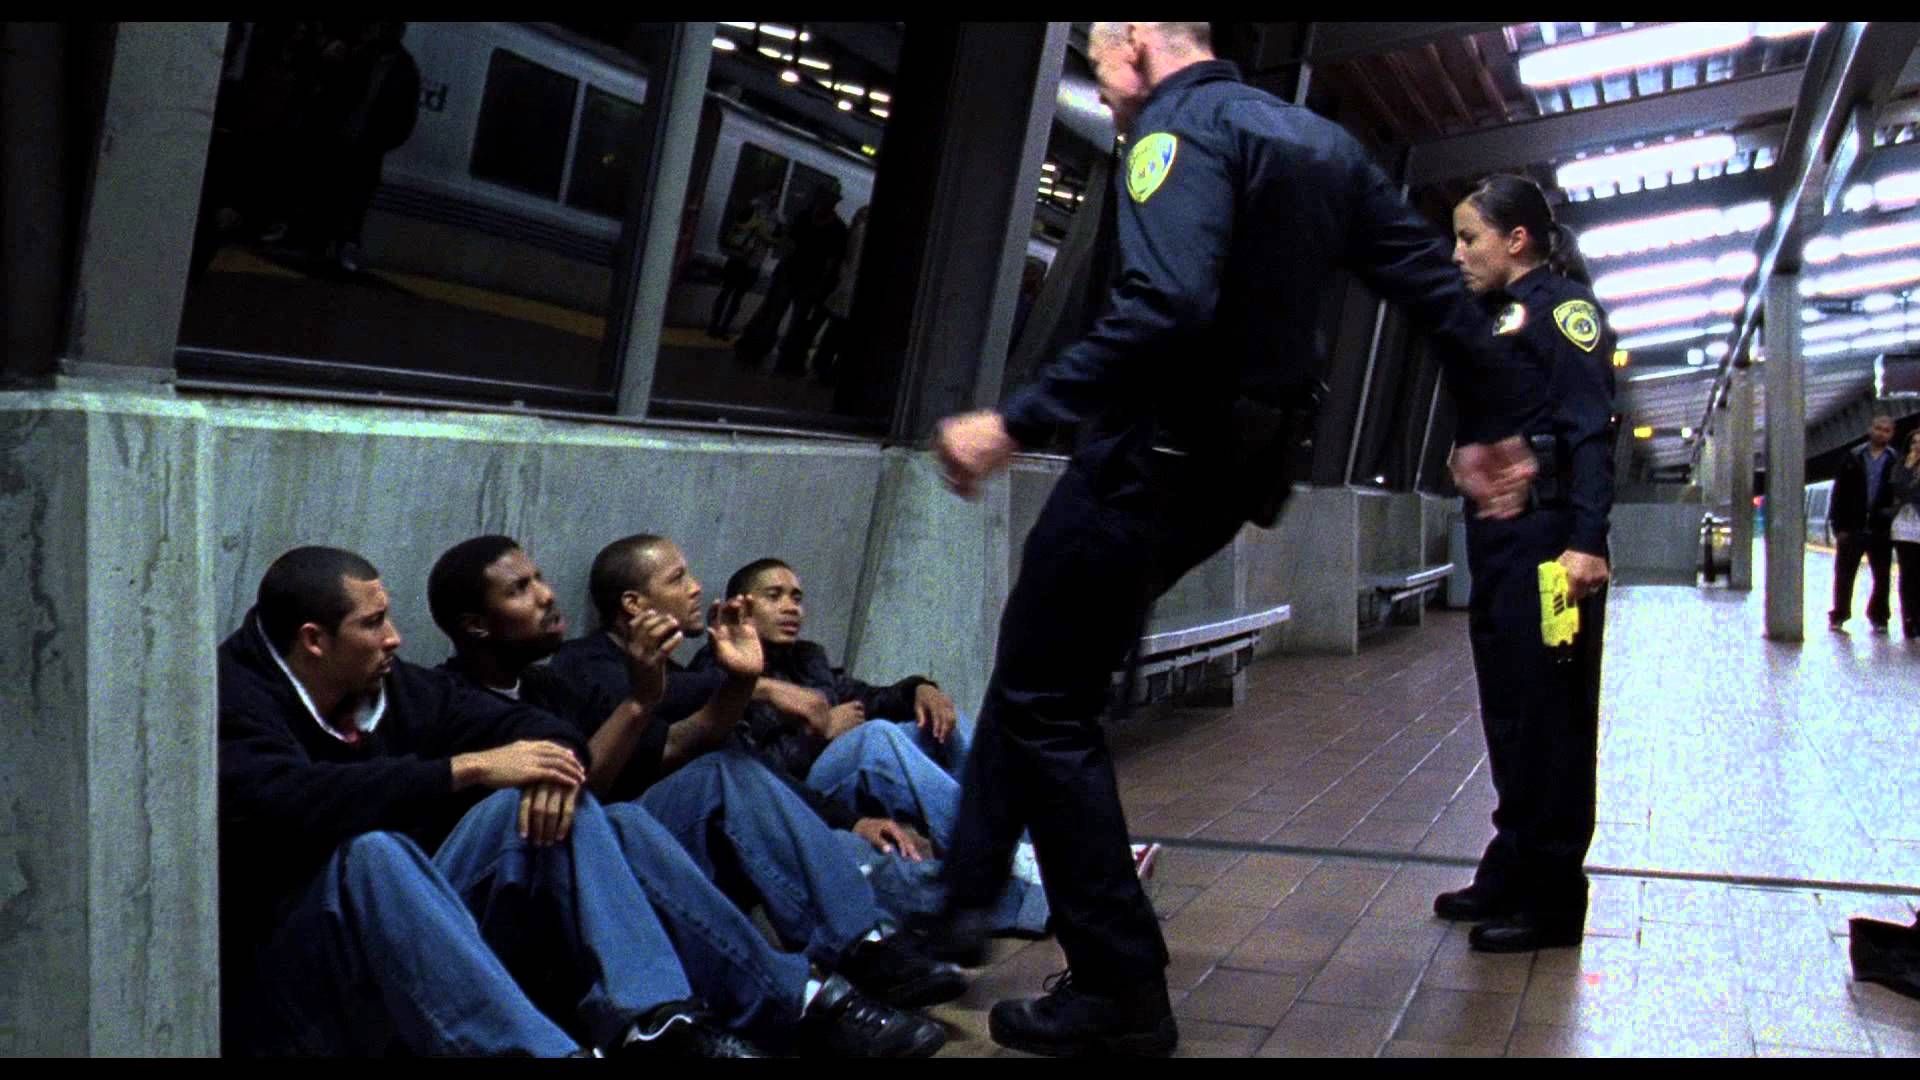 BART train in Ryan Coogler's Fruitvale Station